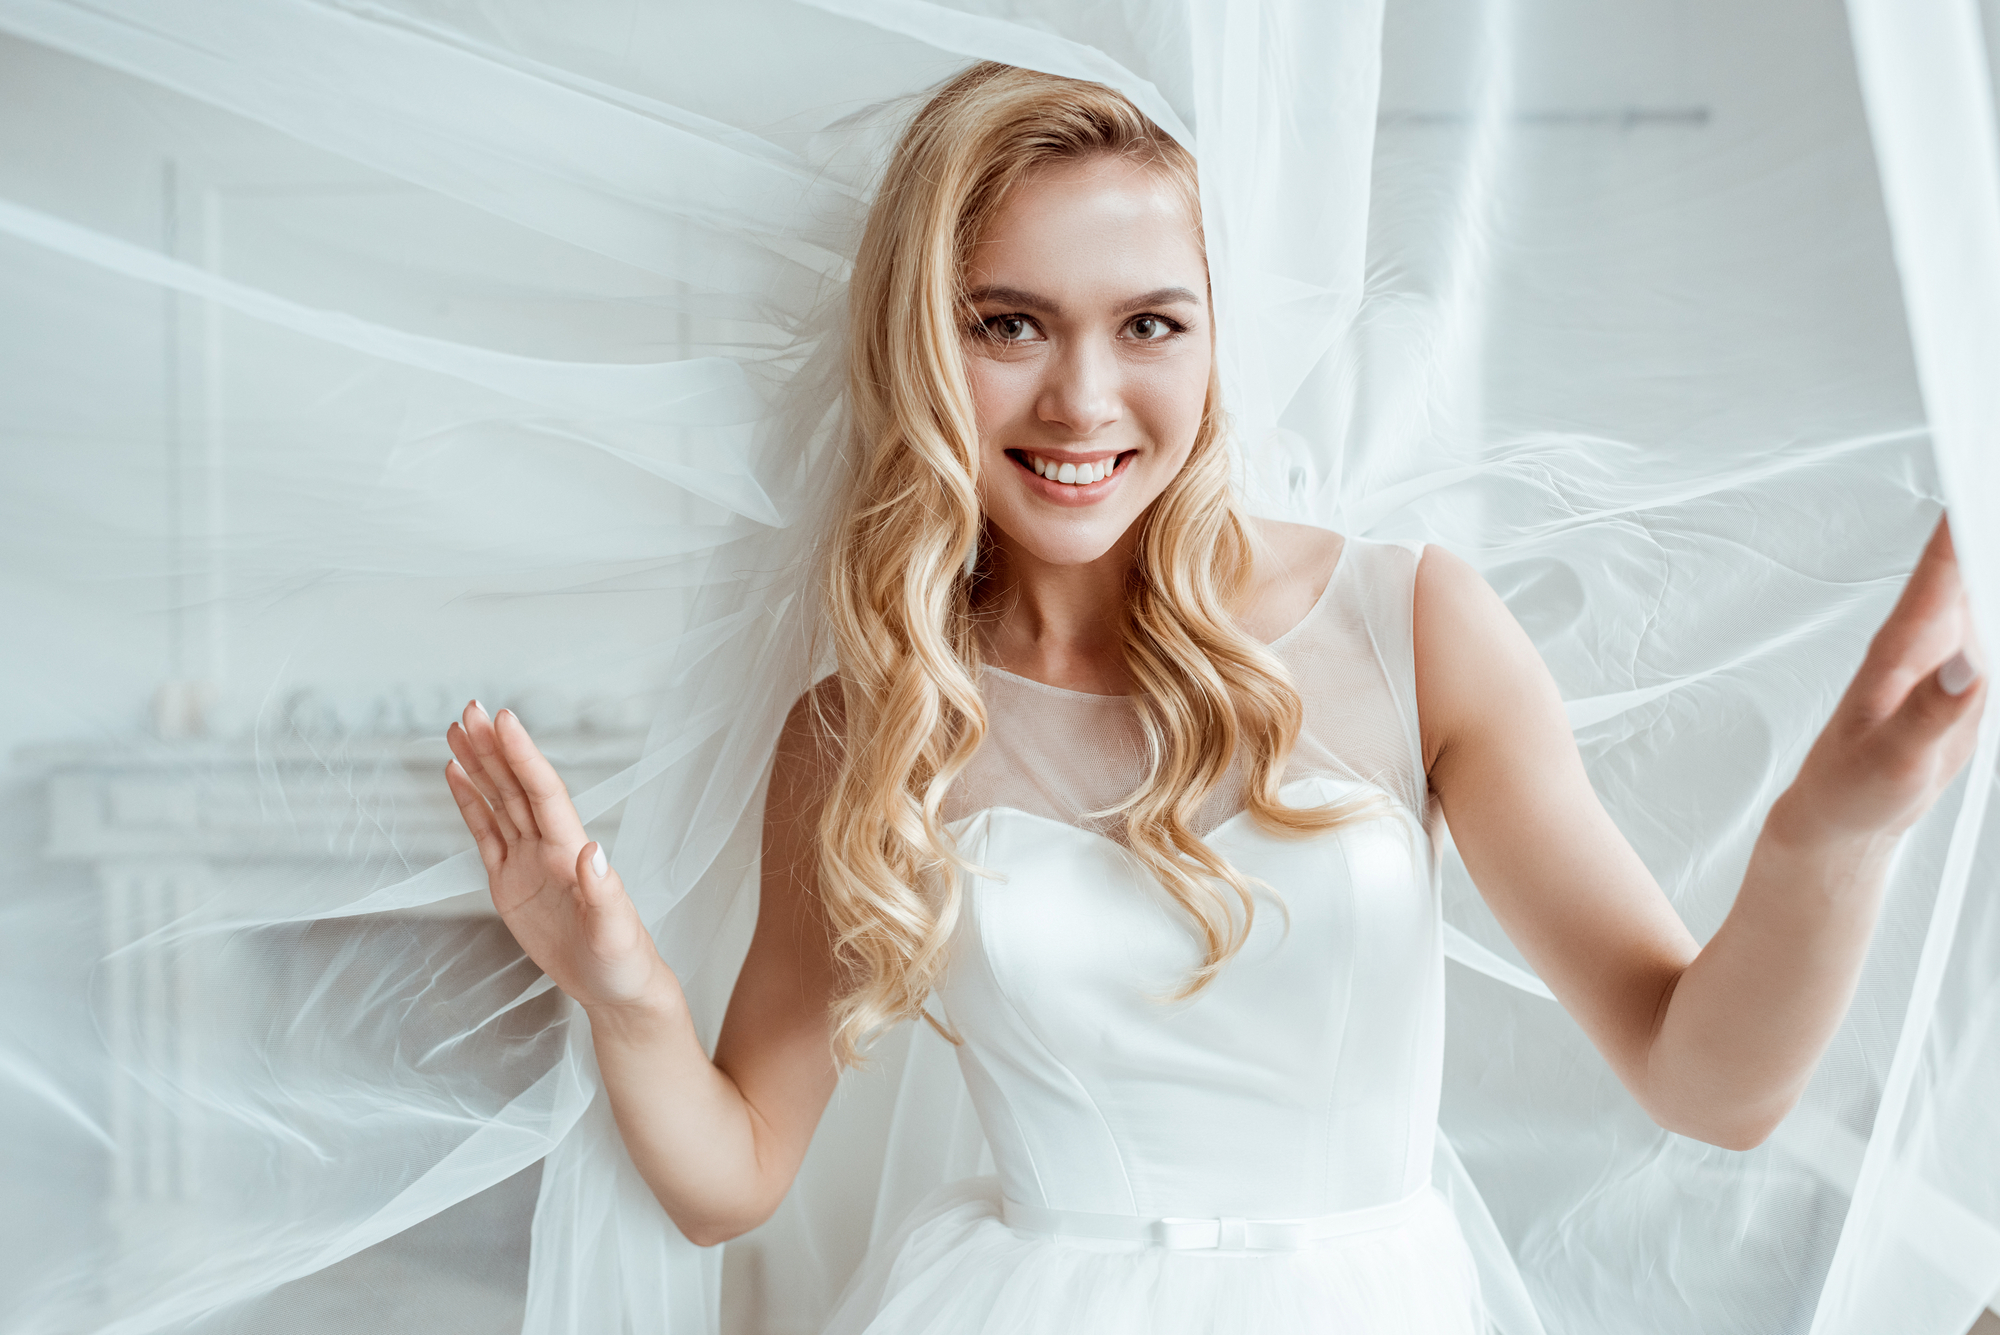 How to Find a Wedding Dress When You're Pressed for Time